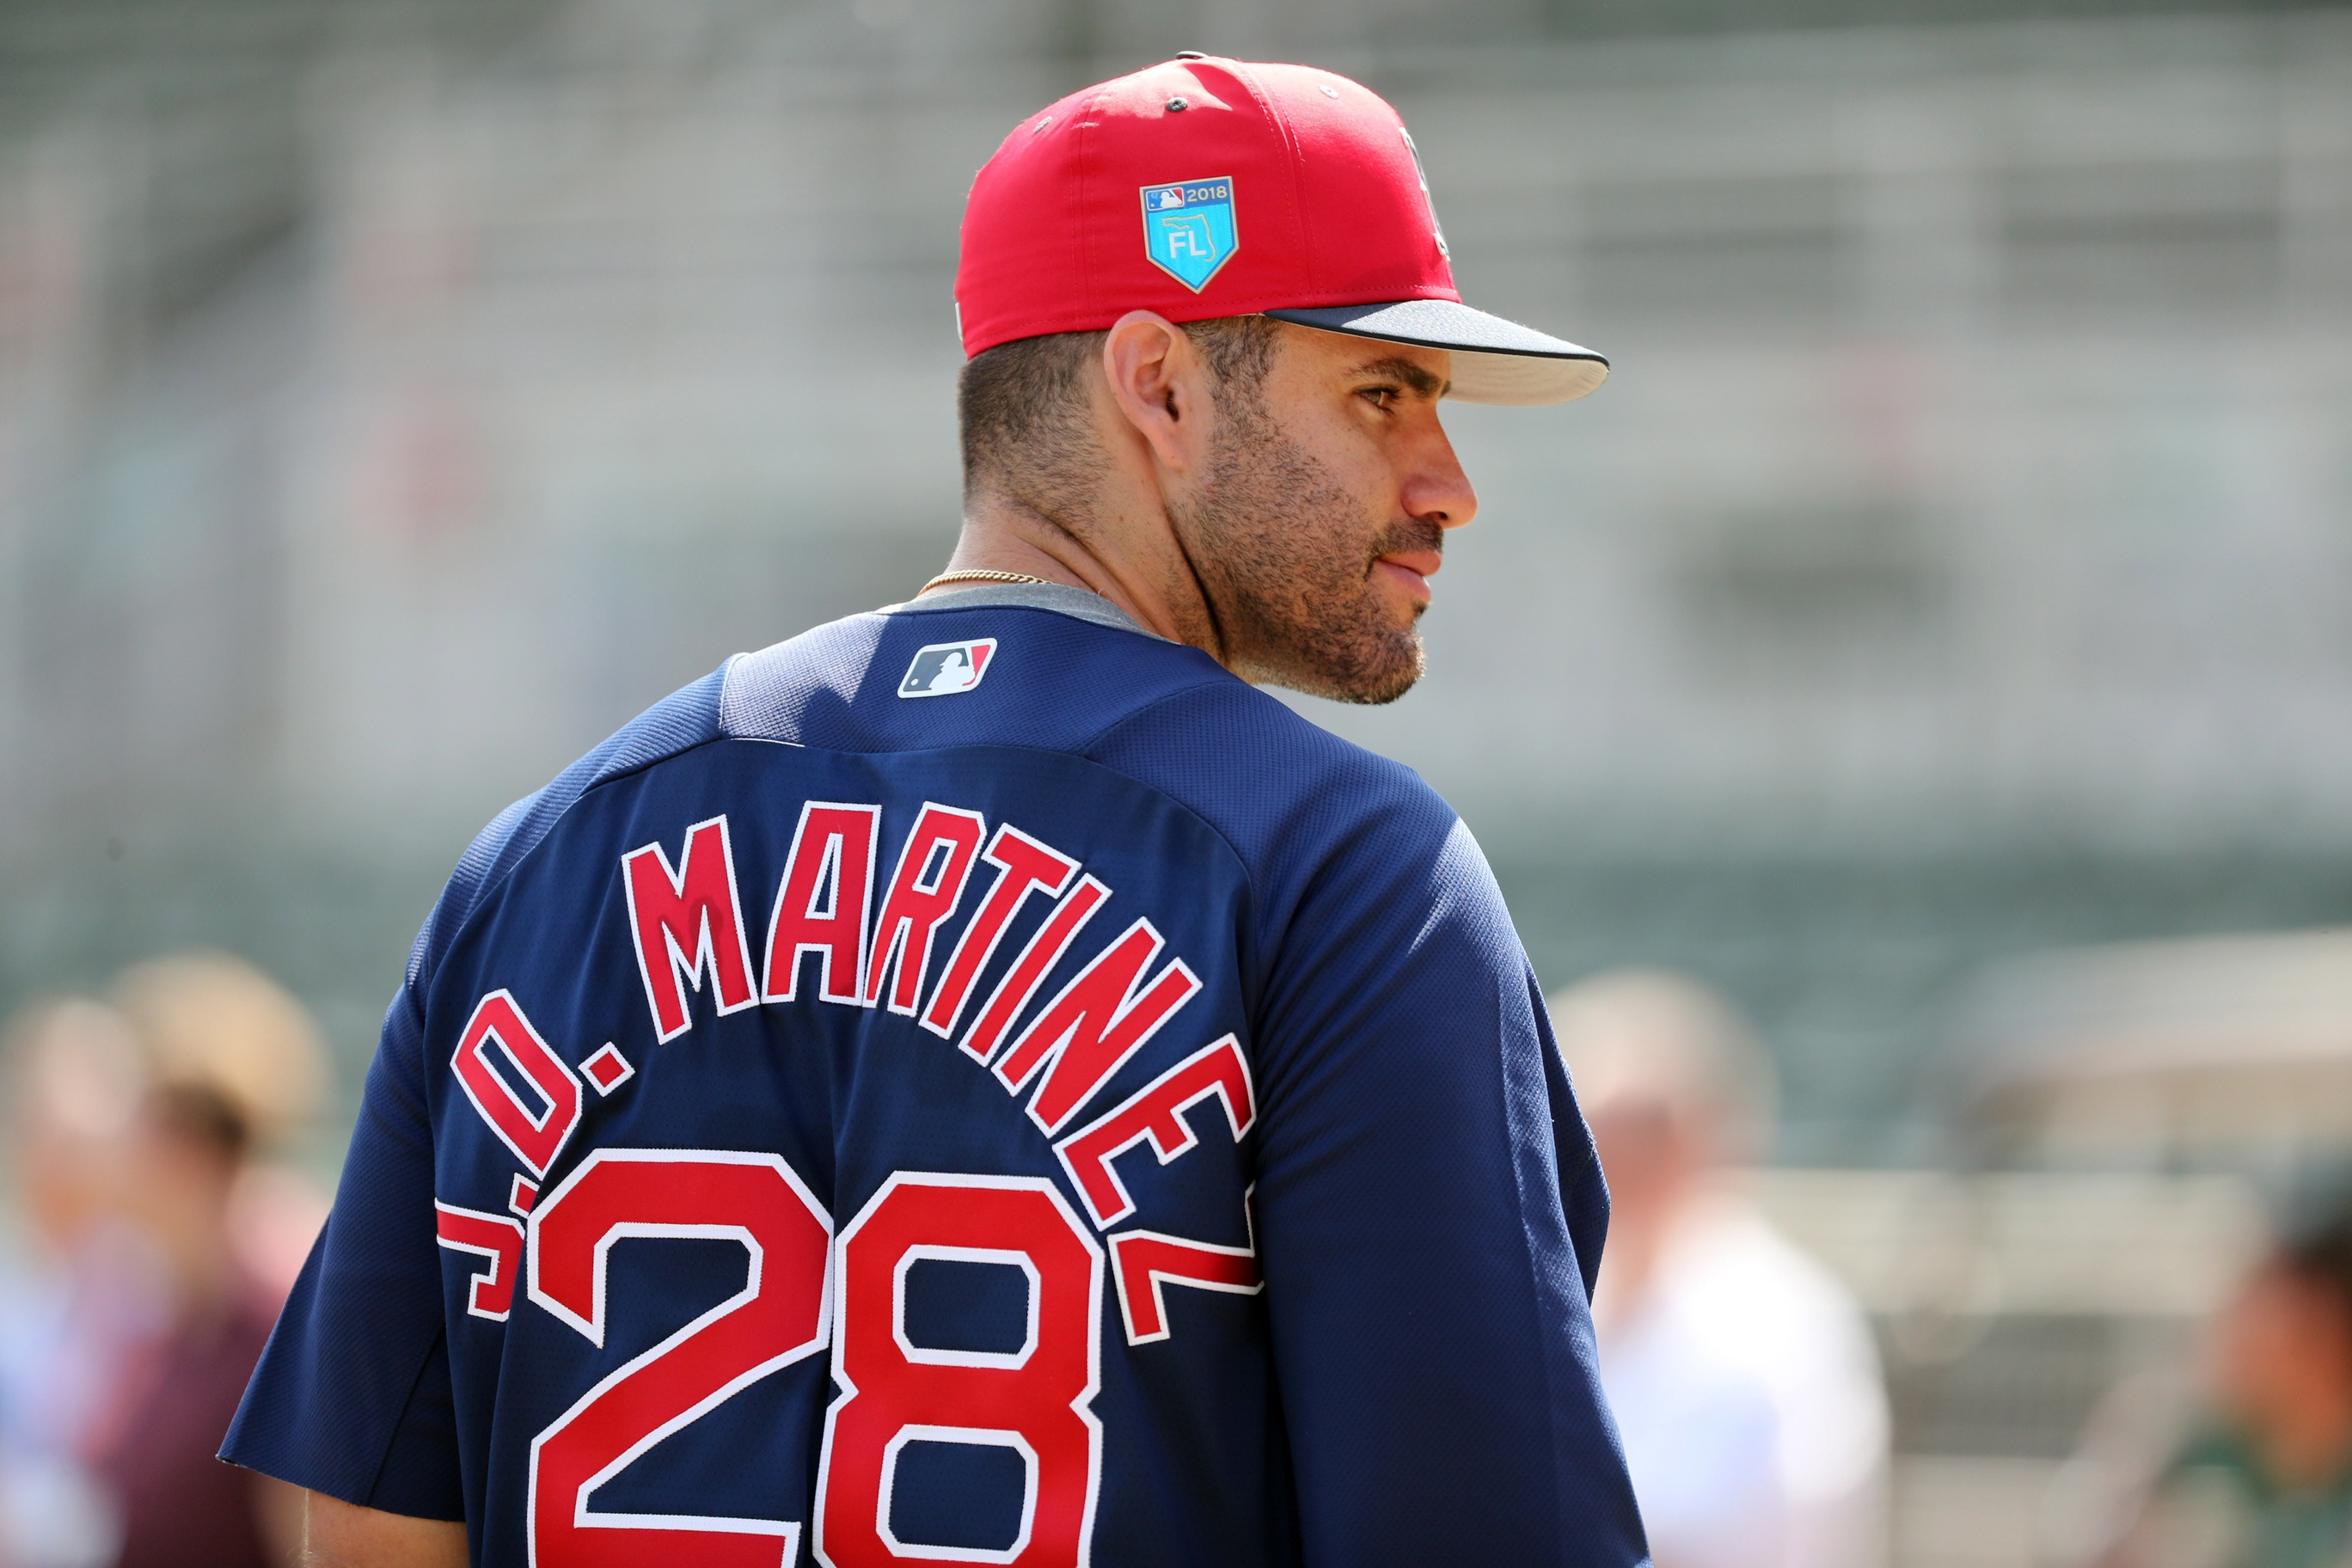 finest selection ceaf9 1bd0a J.D. Martinez contract might be most complex in Red Sox ...